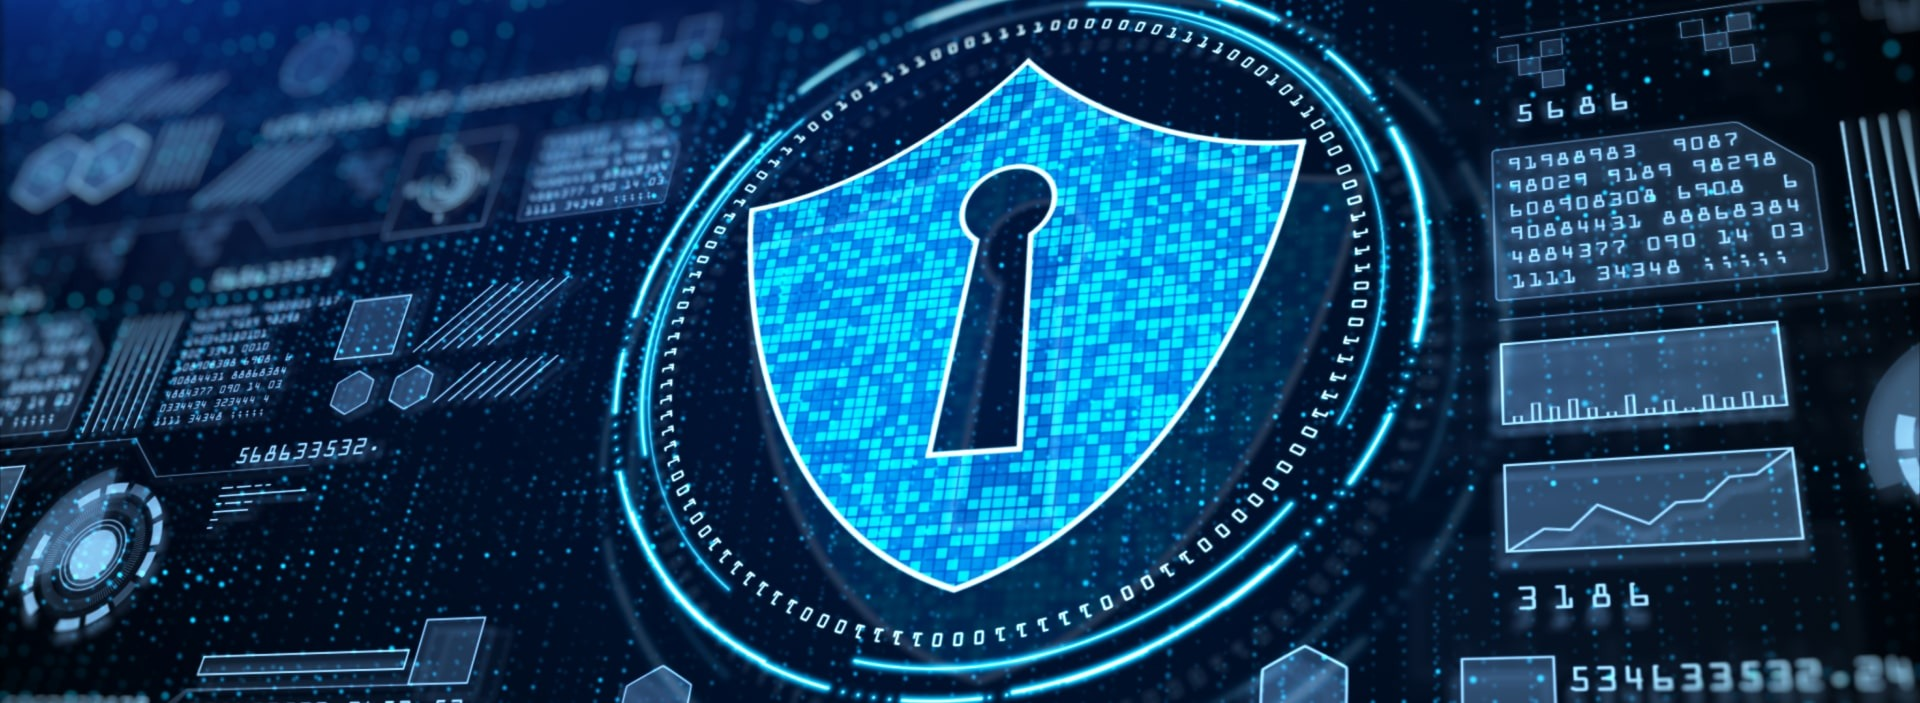 5 best practices to ensure IoT and cloud security